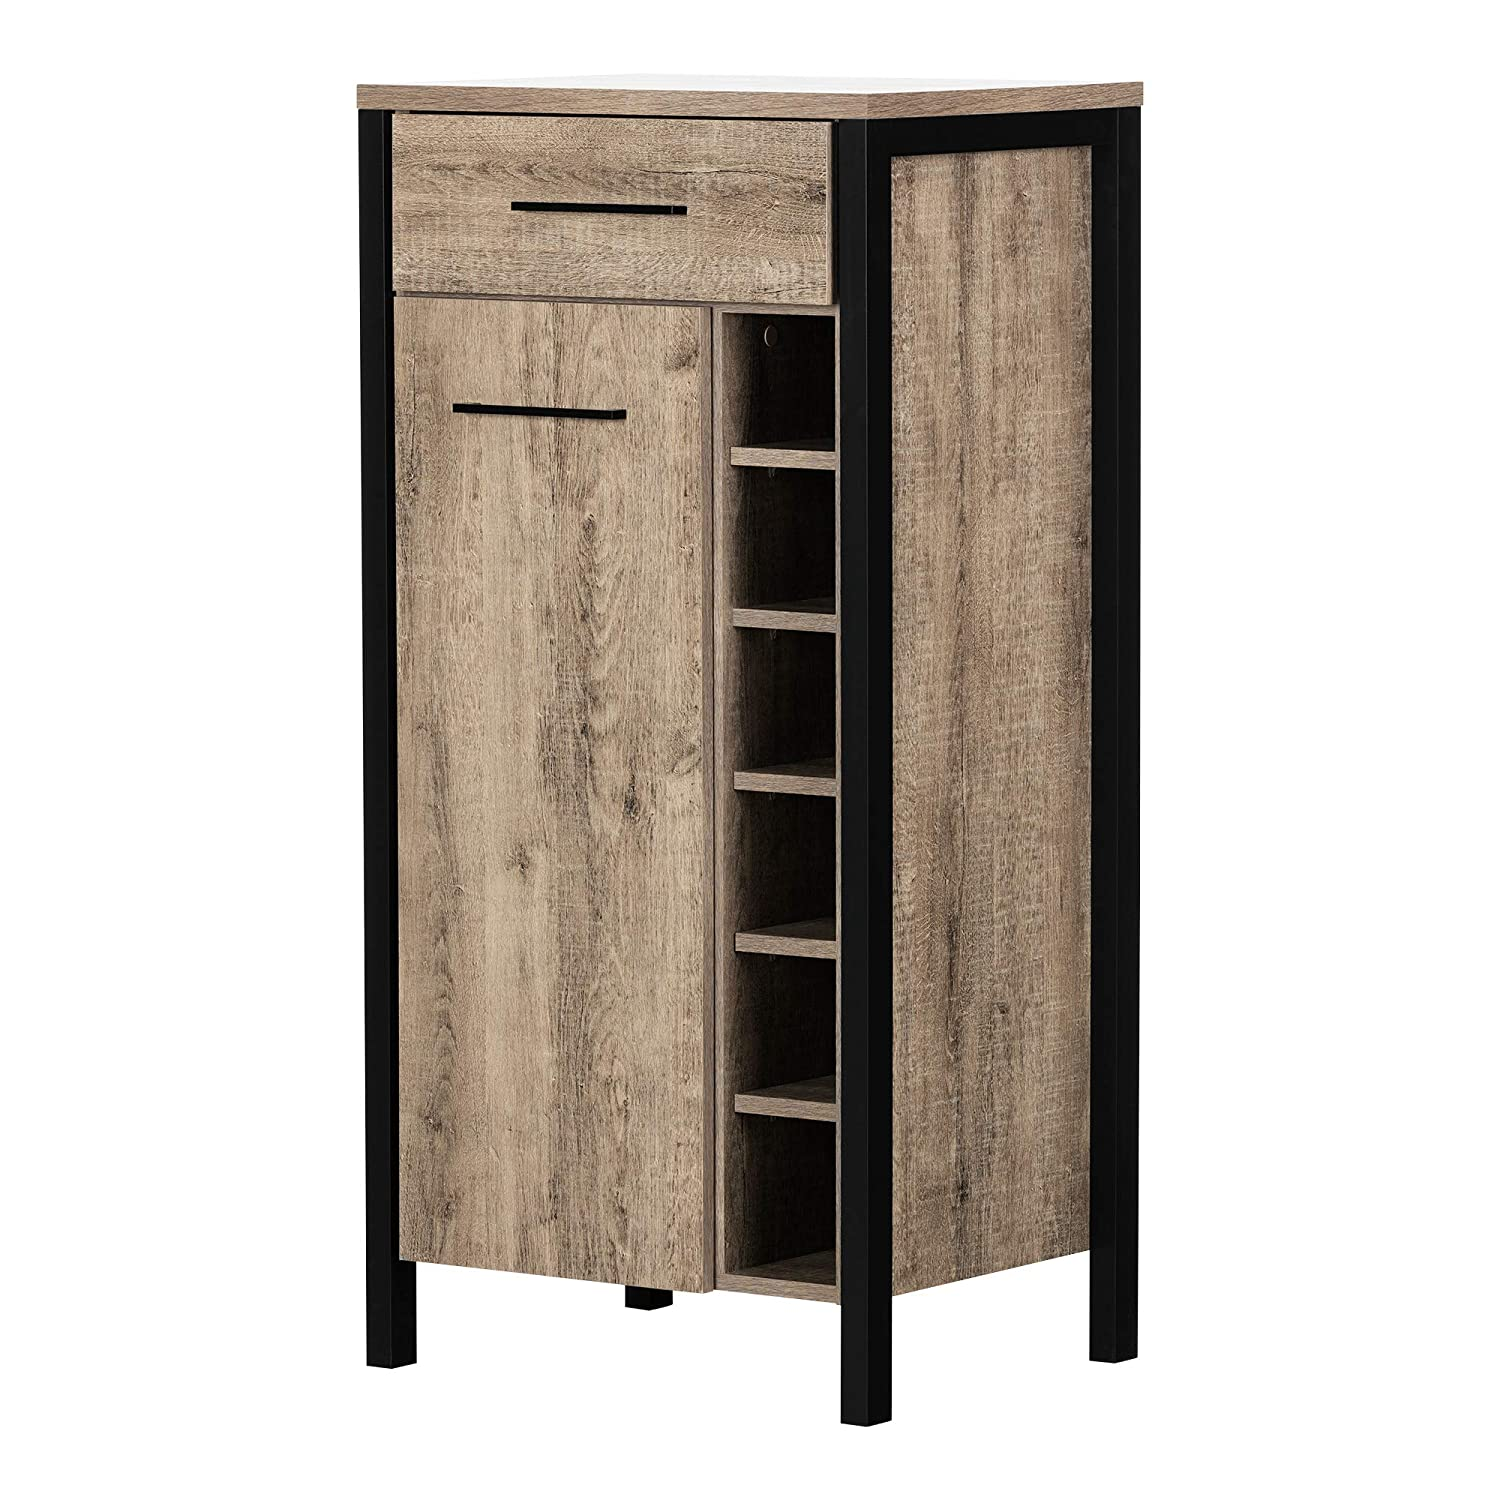 South Shore Furniture 12359 Munich Bar Cabinet with Storage-Weathered Oak and Matte Black